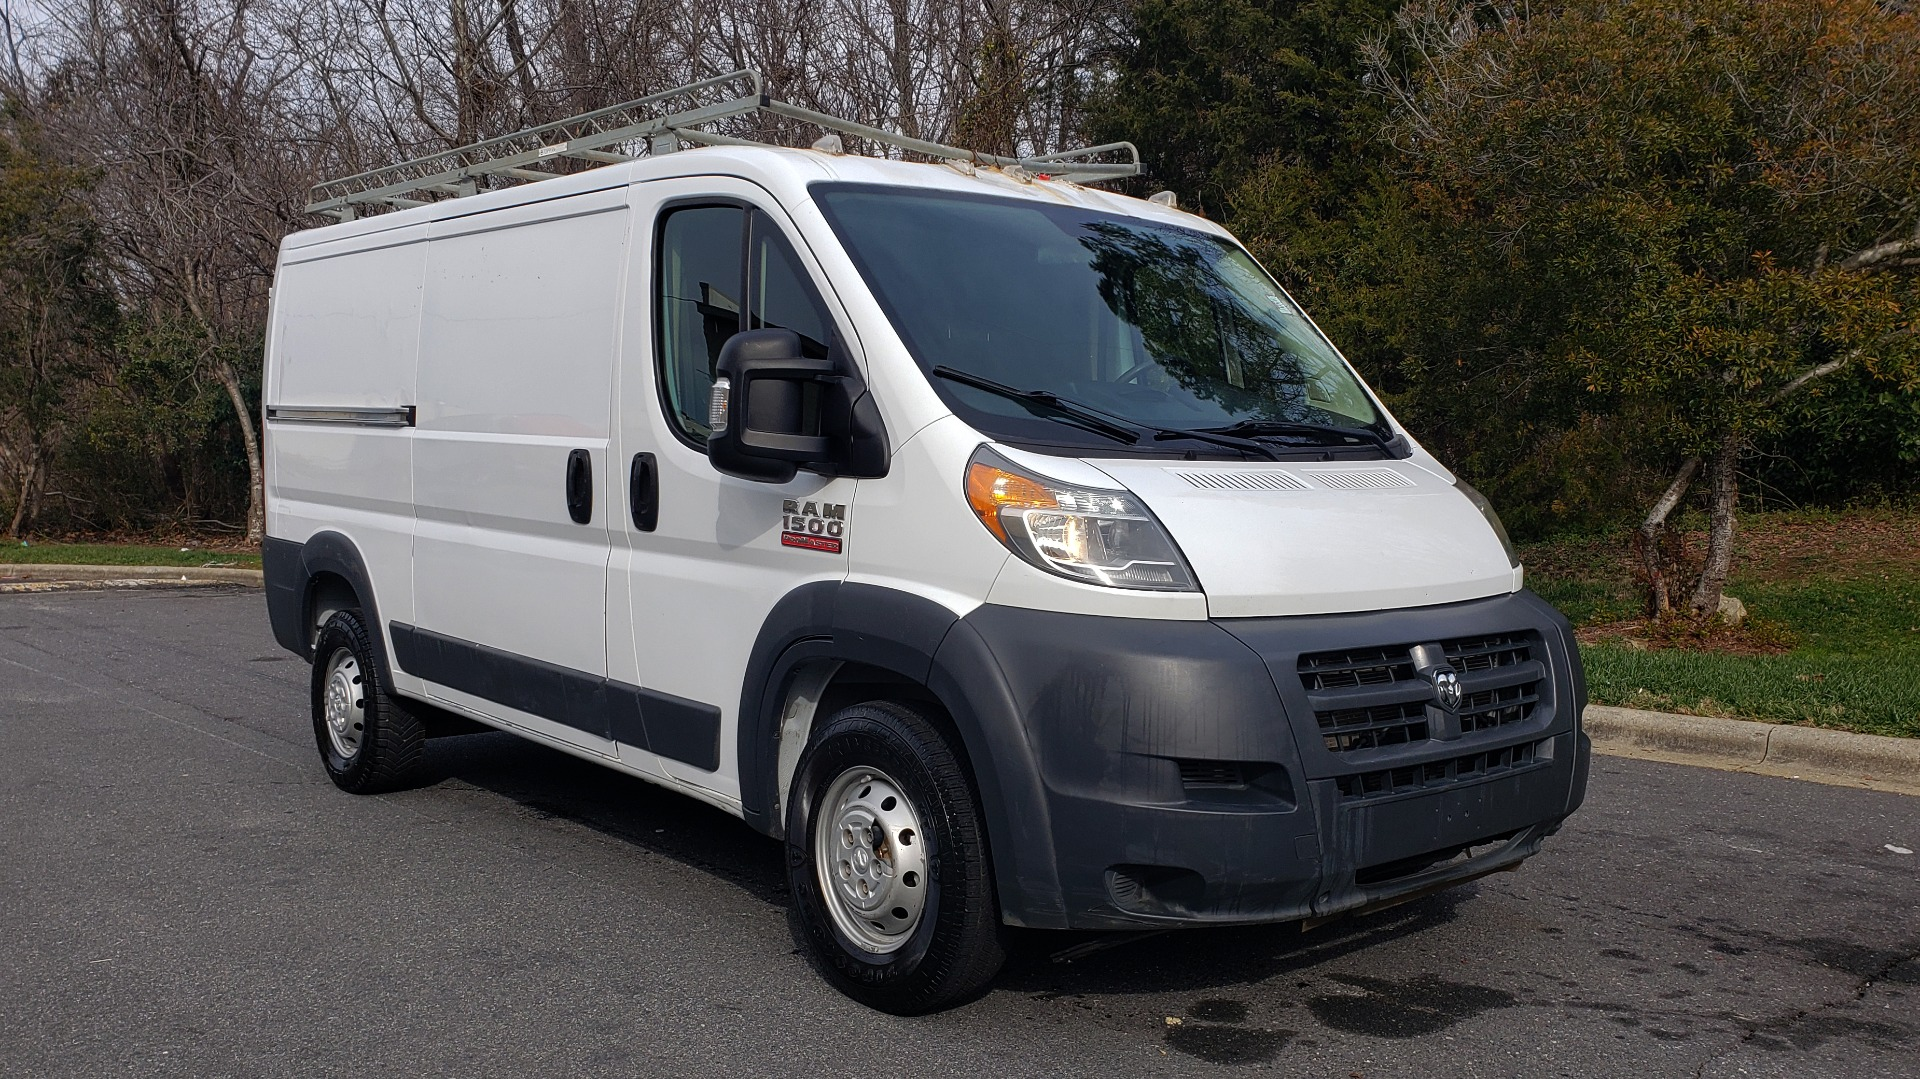 Used 2016 Ram PROMASTER CARGO VAN 136 WB / LOW ROOF / 3.6L V6 / 6-SPD AUTO / REARVIEW for sale $17,500 at Formula Imports in Charlotte NC 28227 5